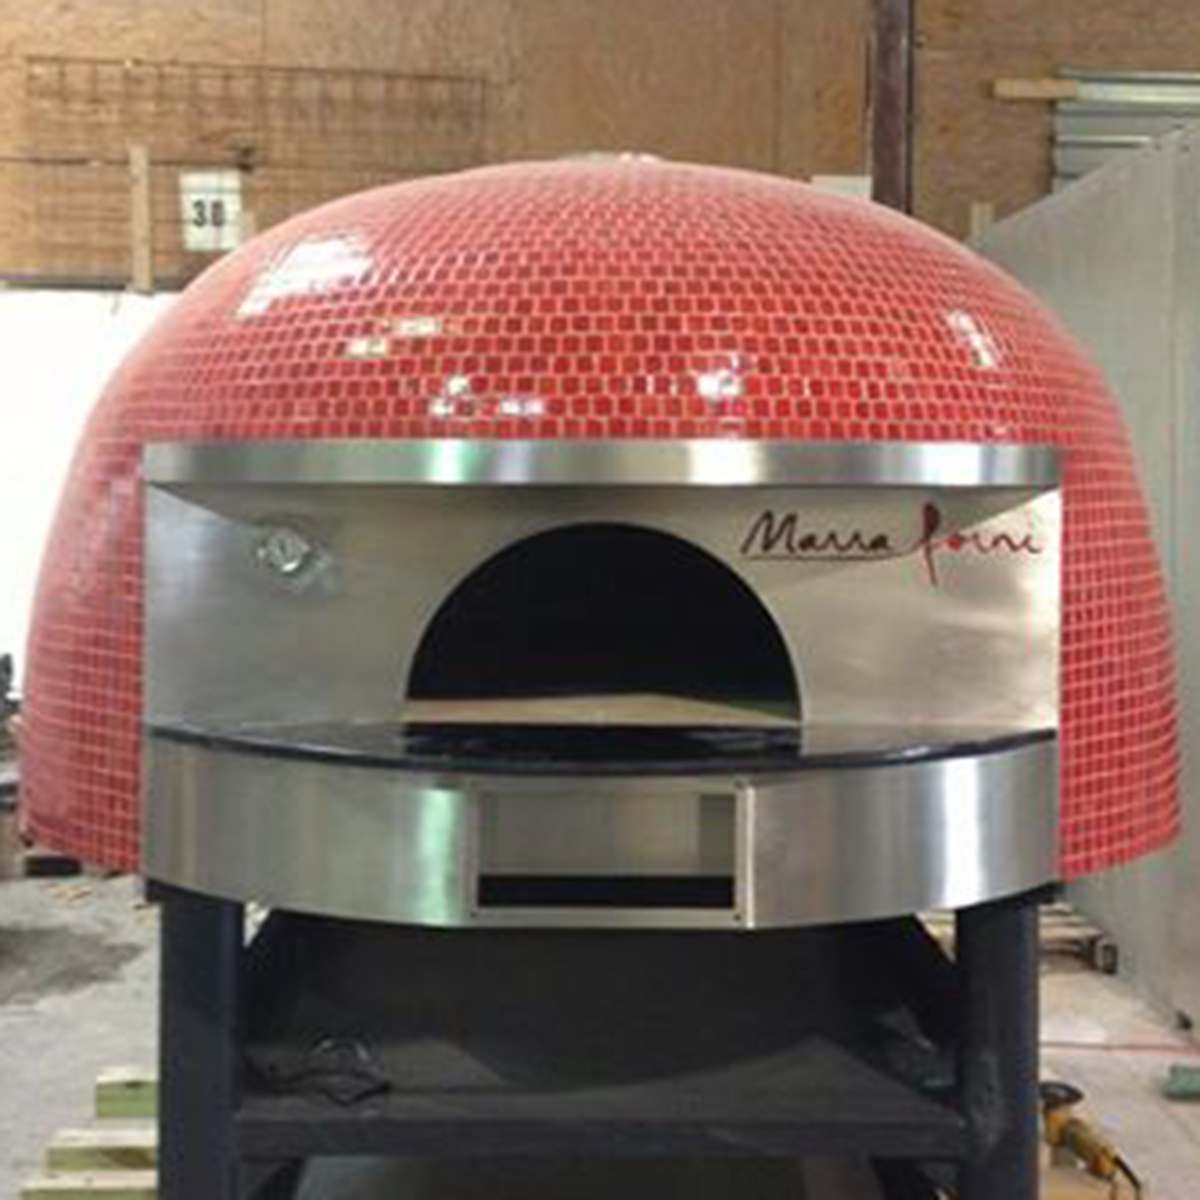 pastoral pizza oven